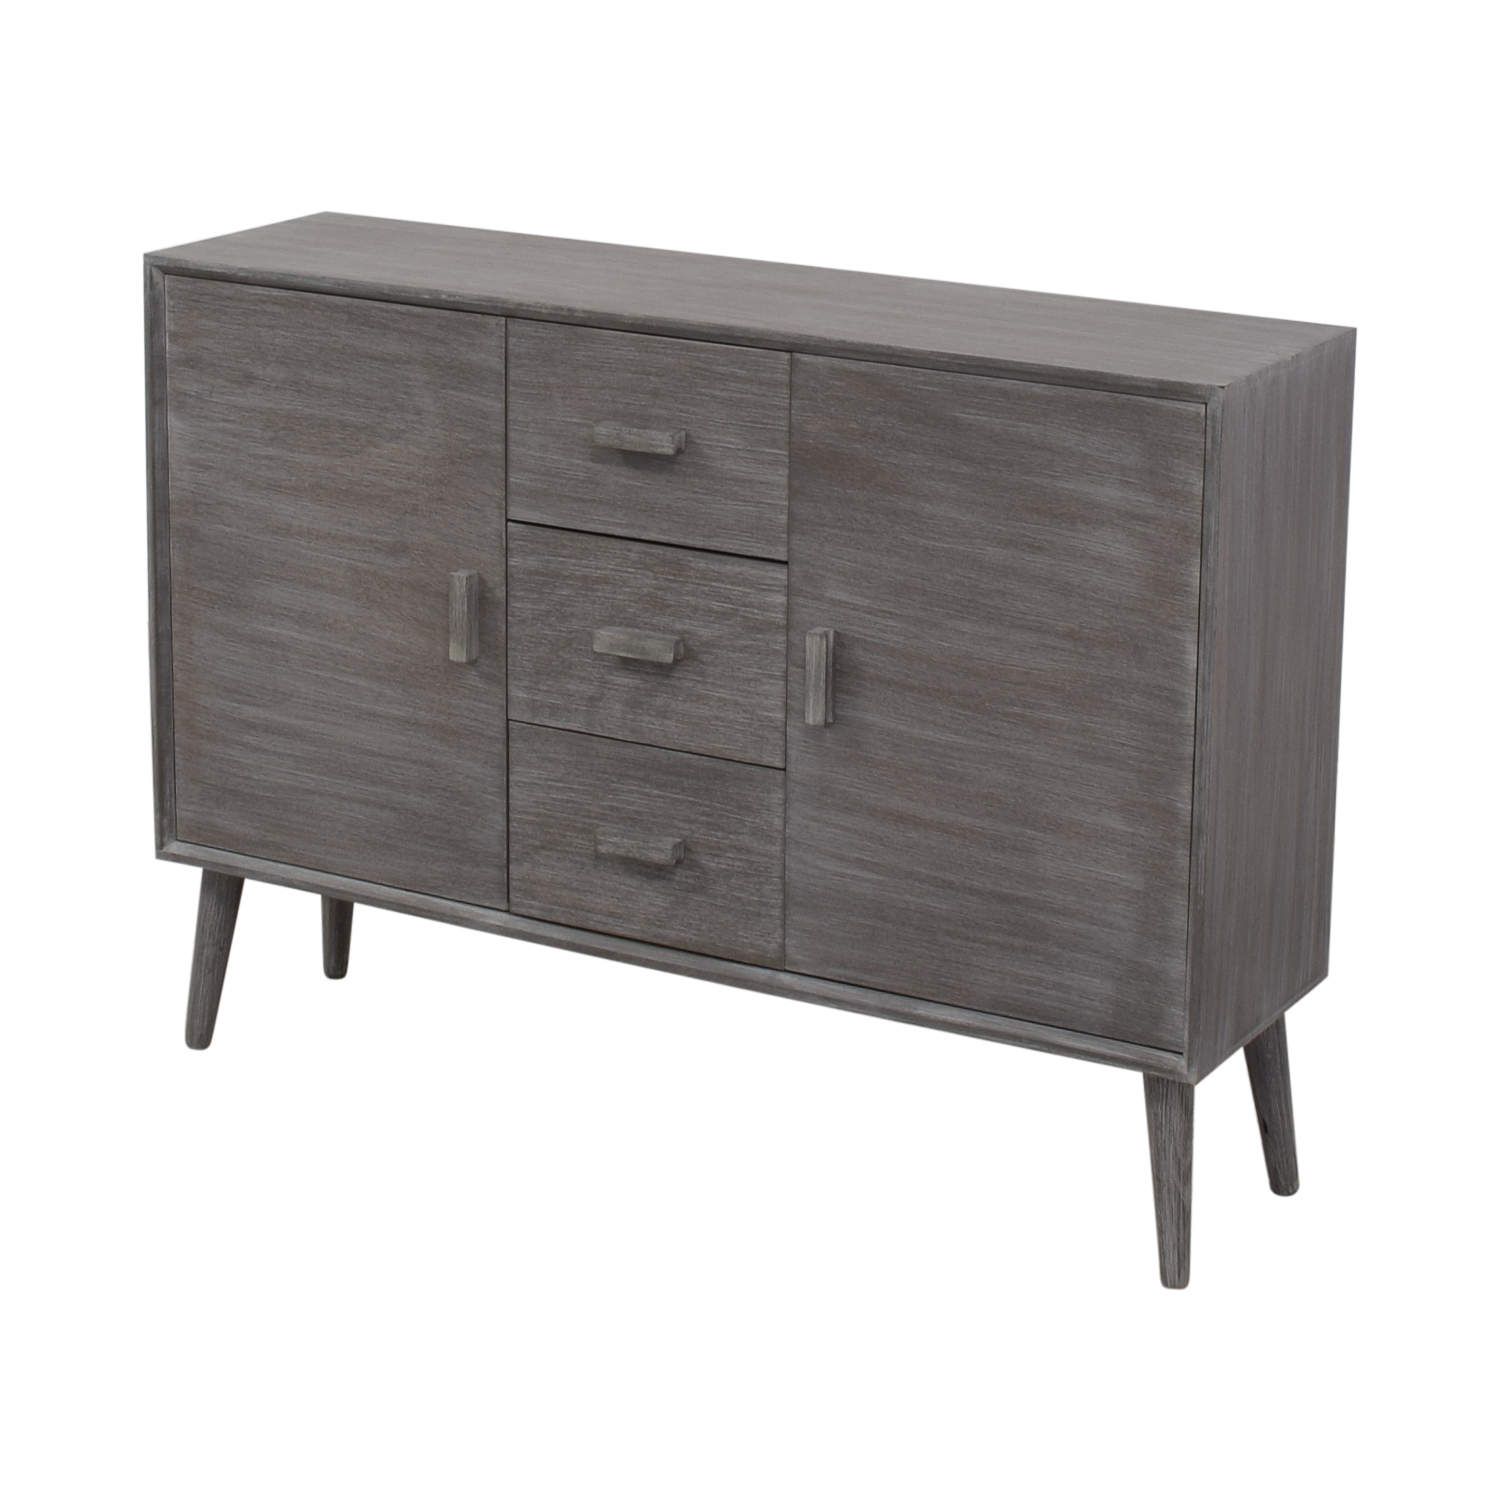 buy  Grey Cabinet with Three Drawers online